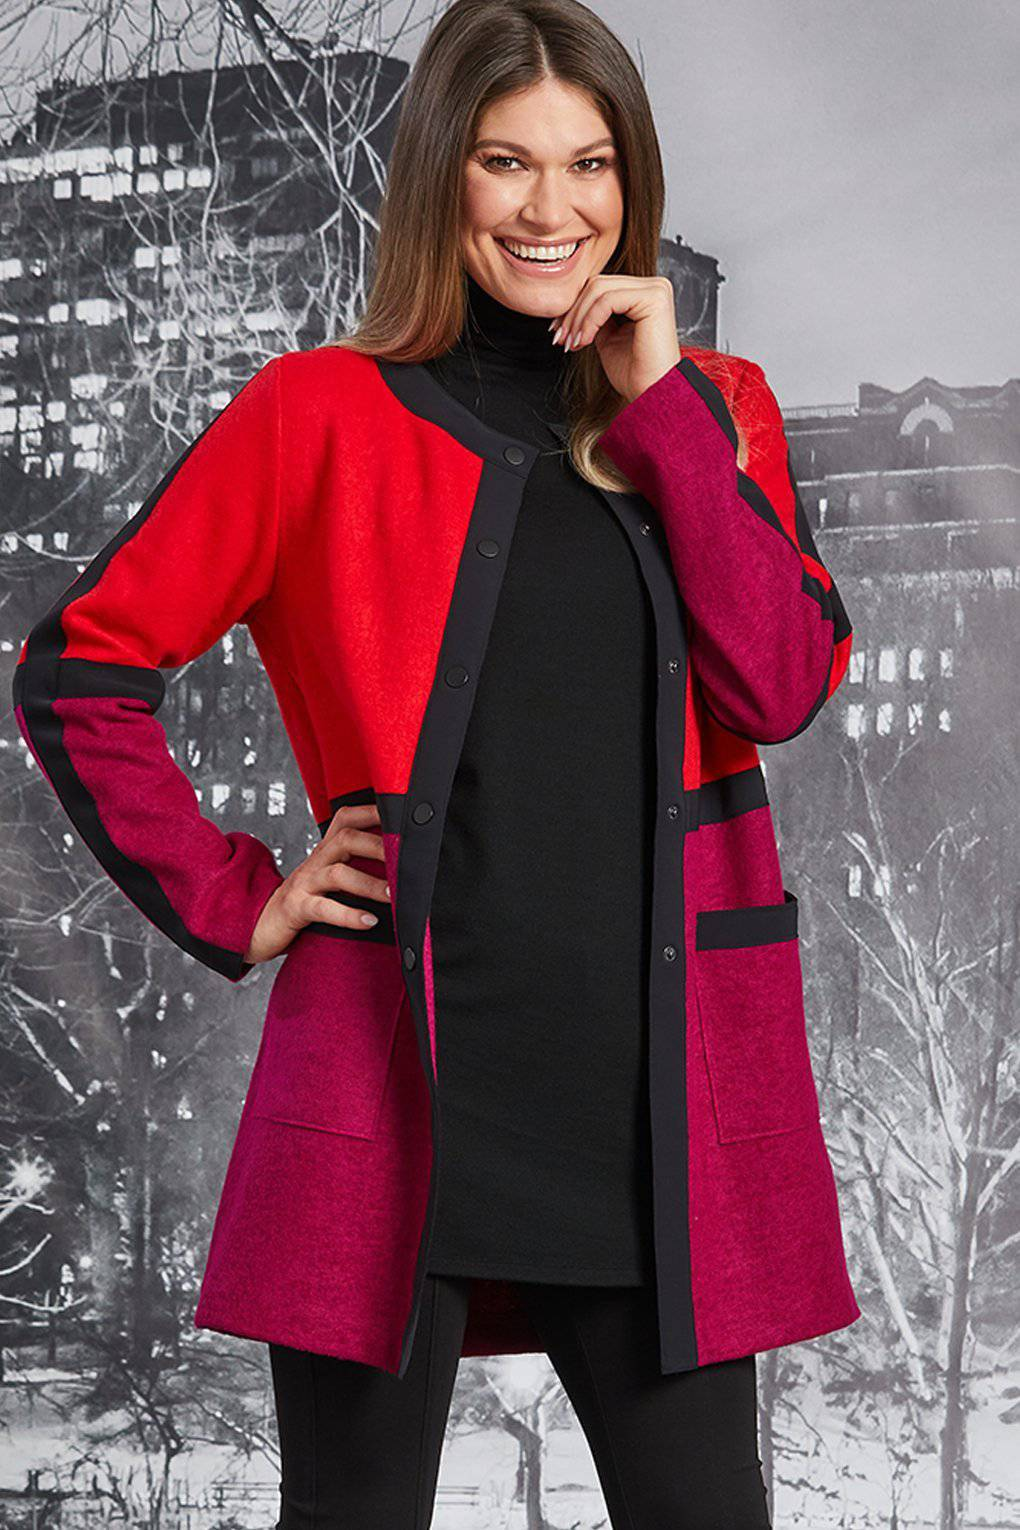 PAULA RYAN Colour Block Coat - Paula Ryan